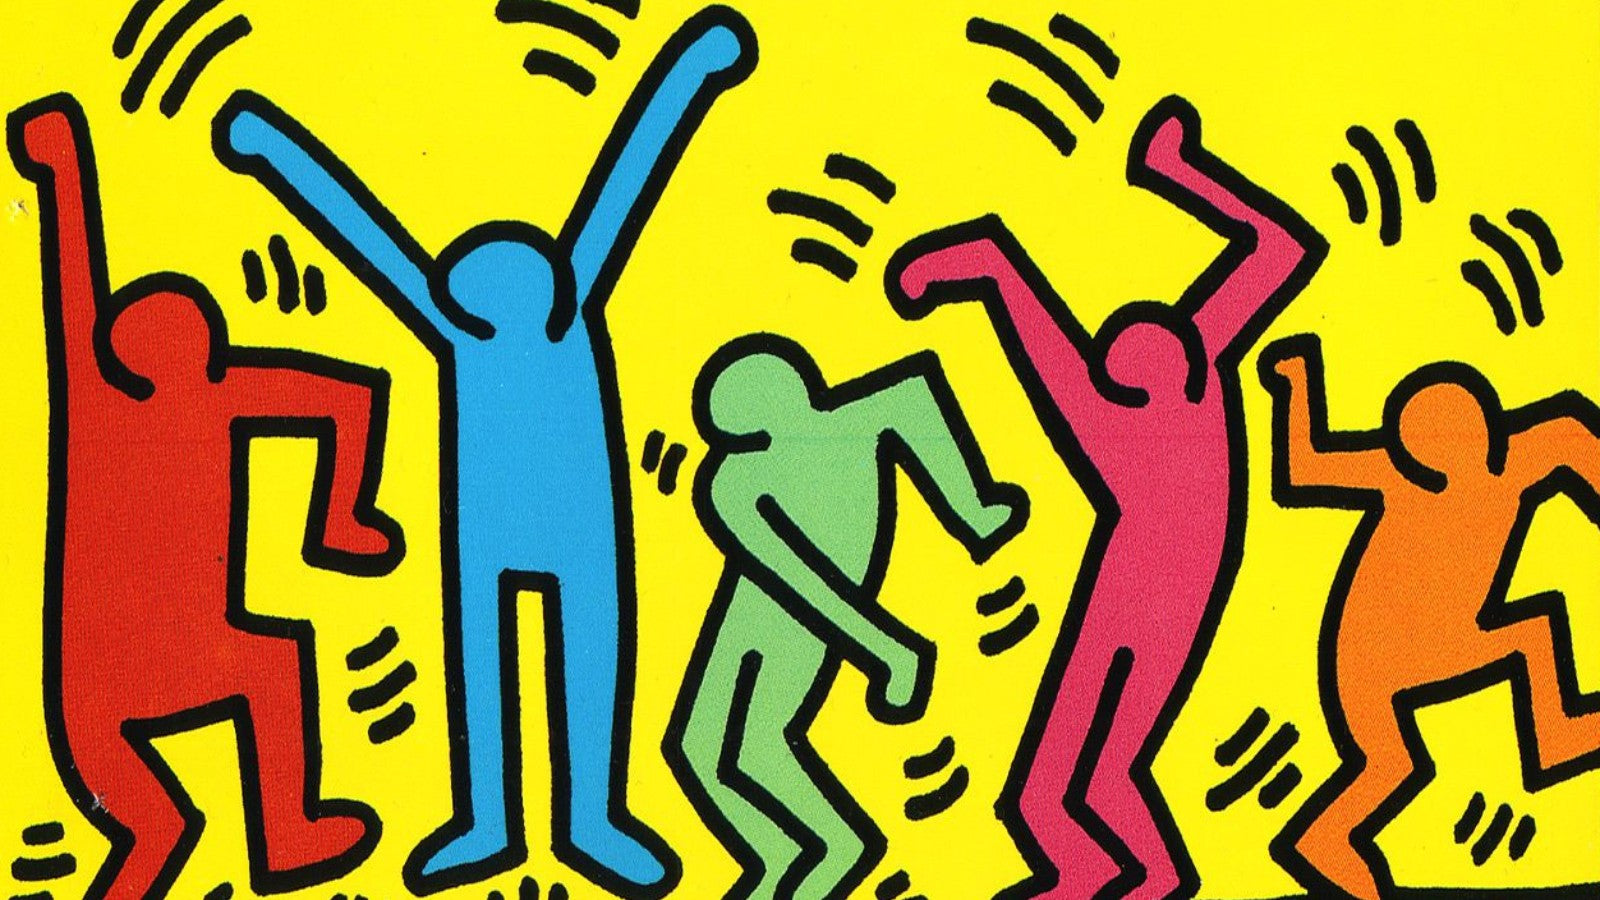 Untitled (Dance) painting by Keith Haring (1987)